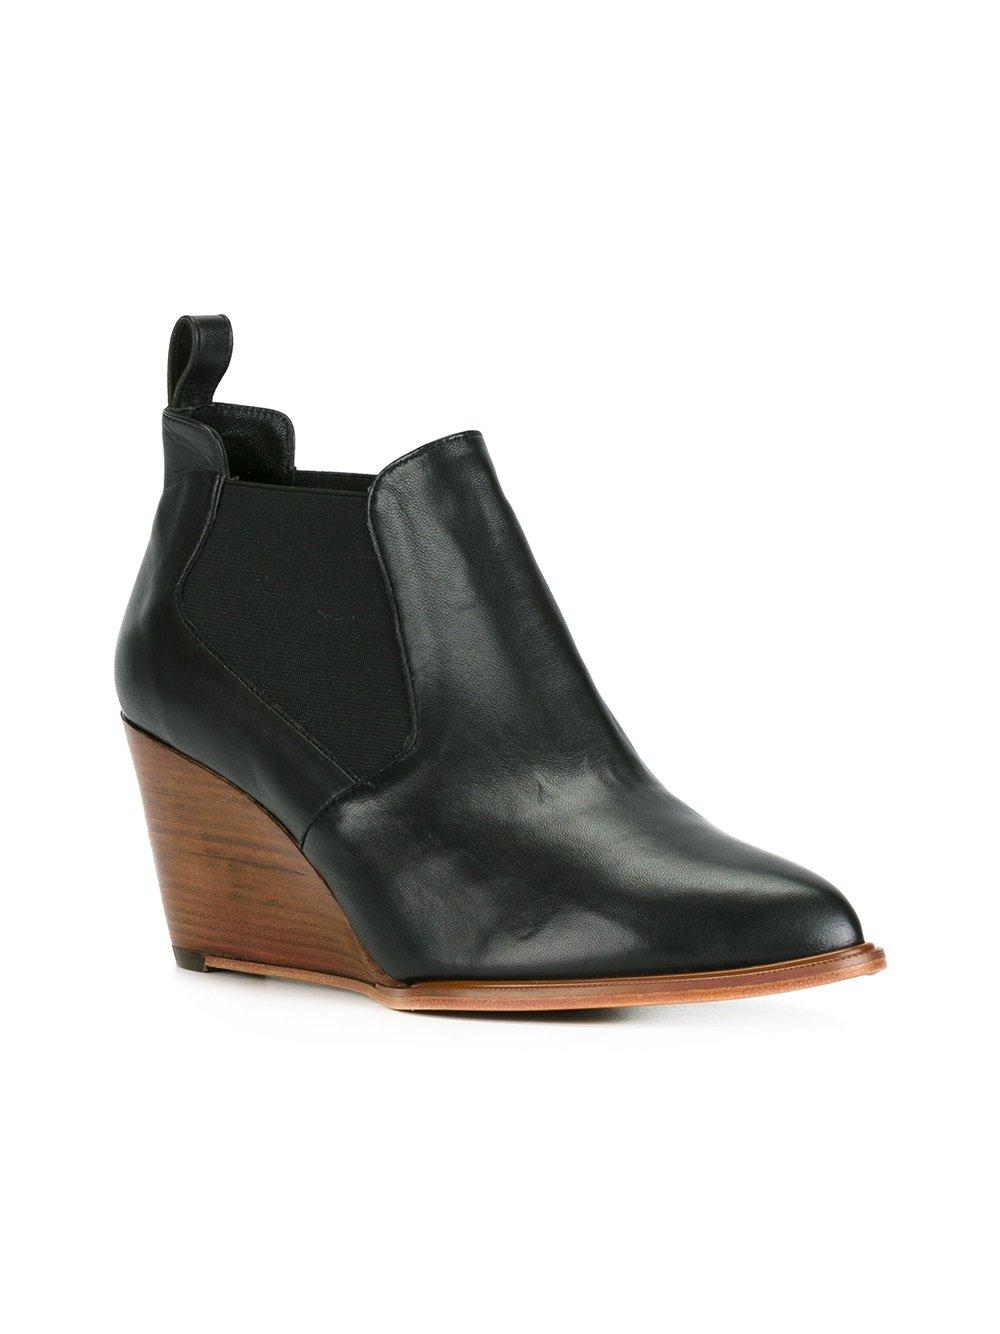 robert clergerie wedge ankle boots in black lyst